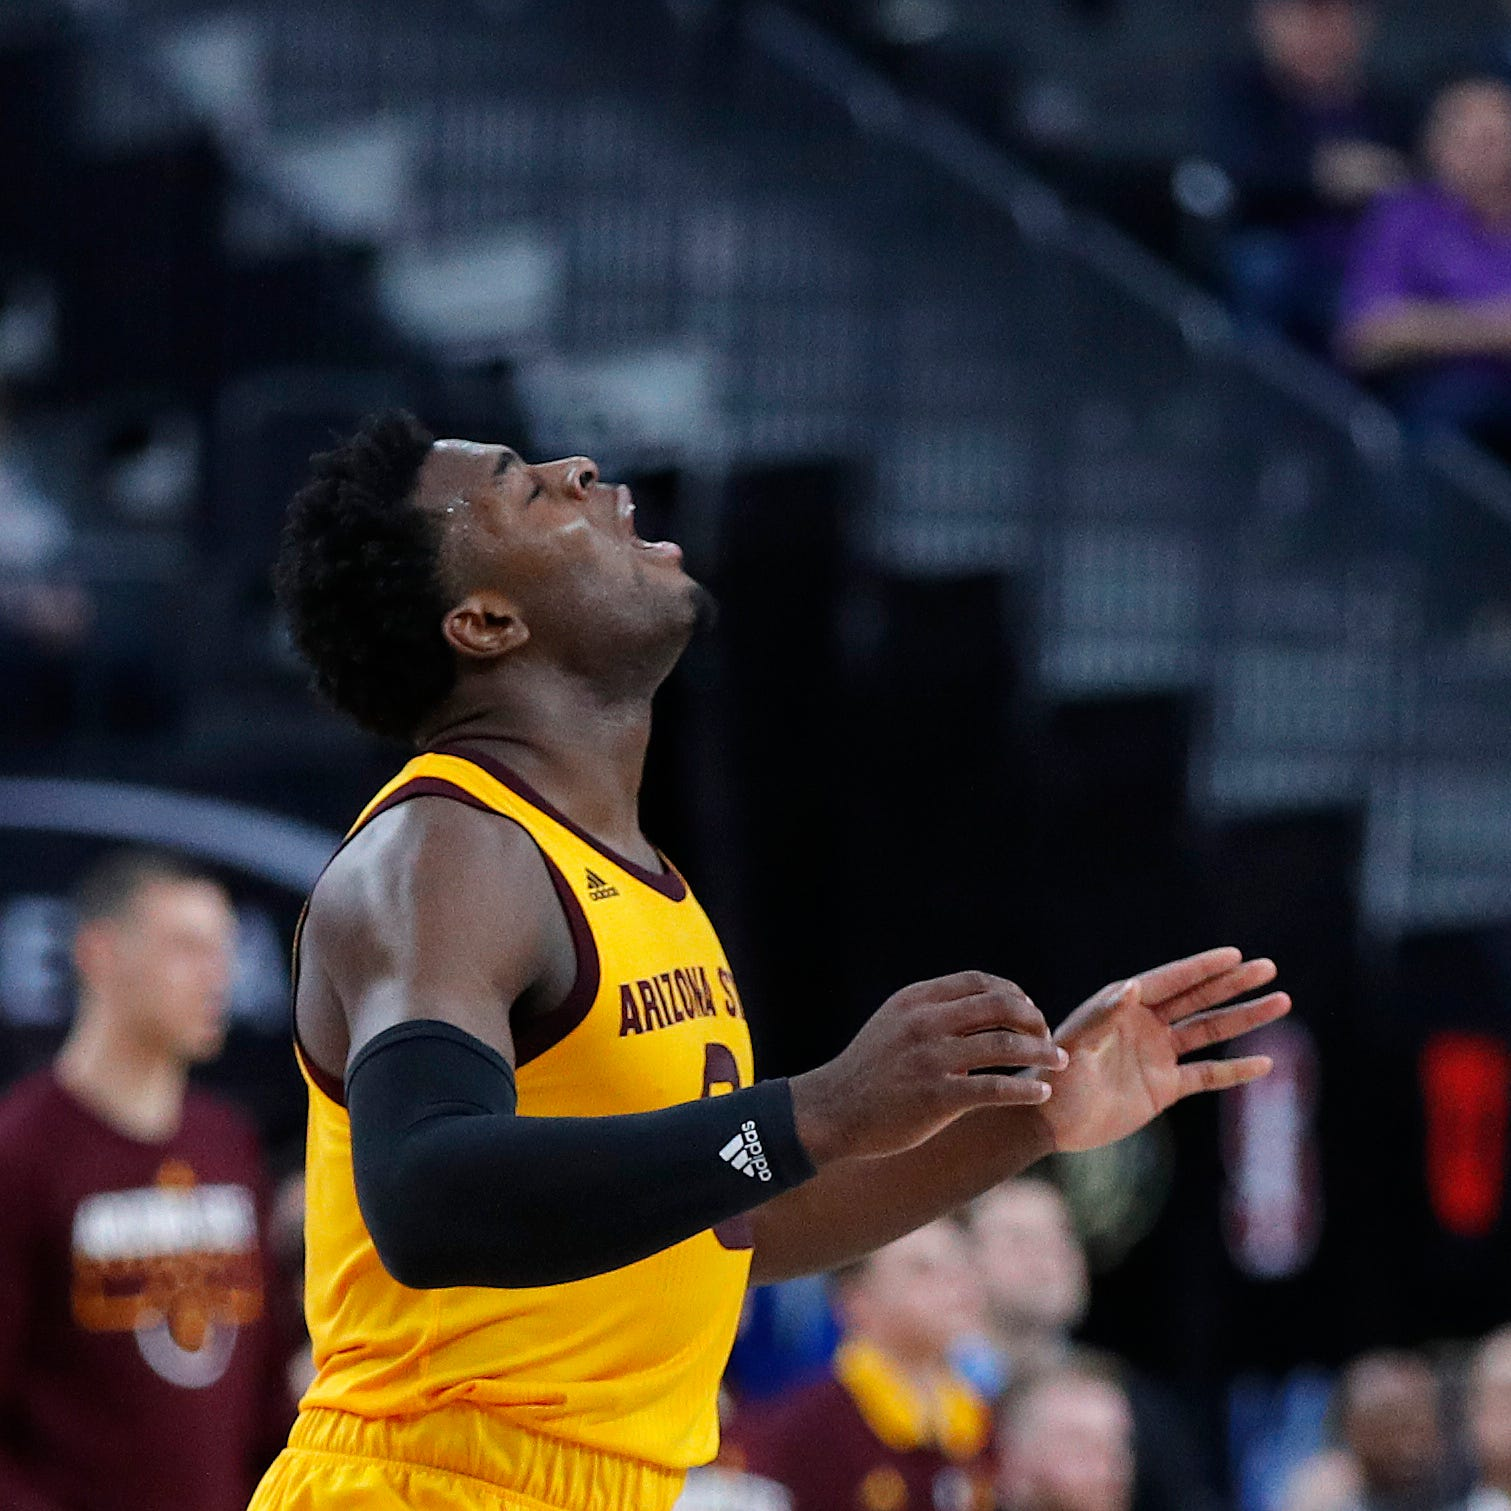 Prediction: Arizona State will beat St. John's because of experience